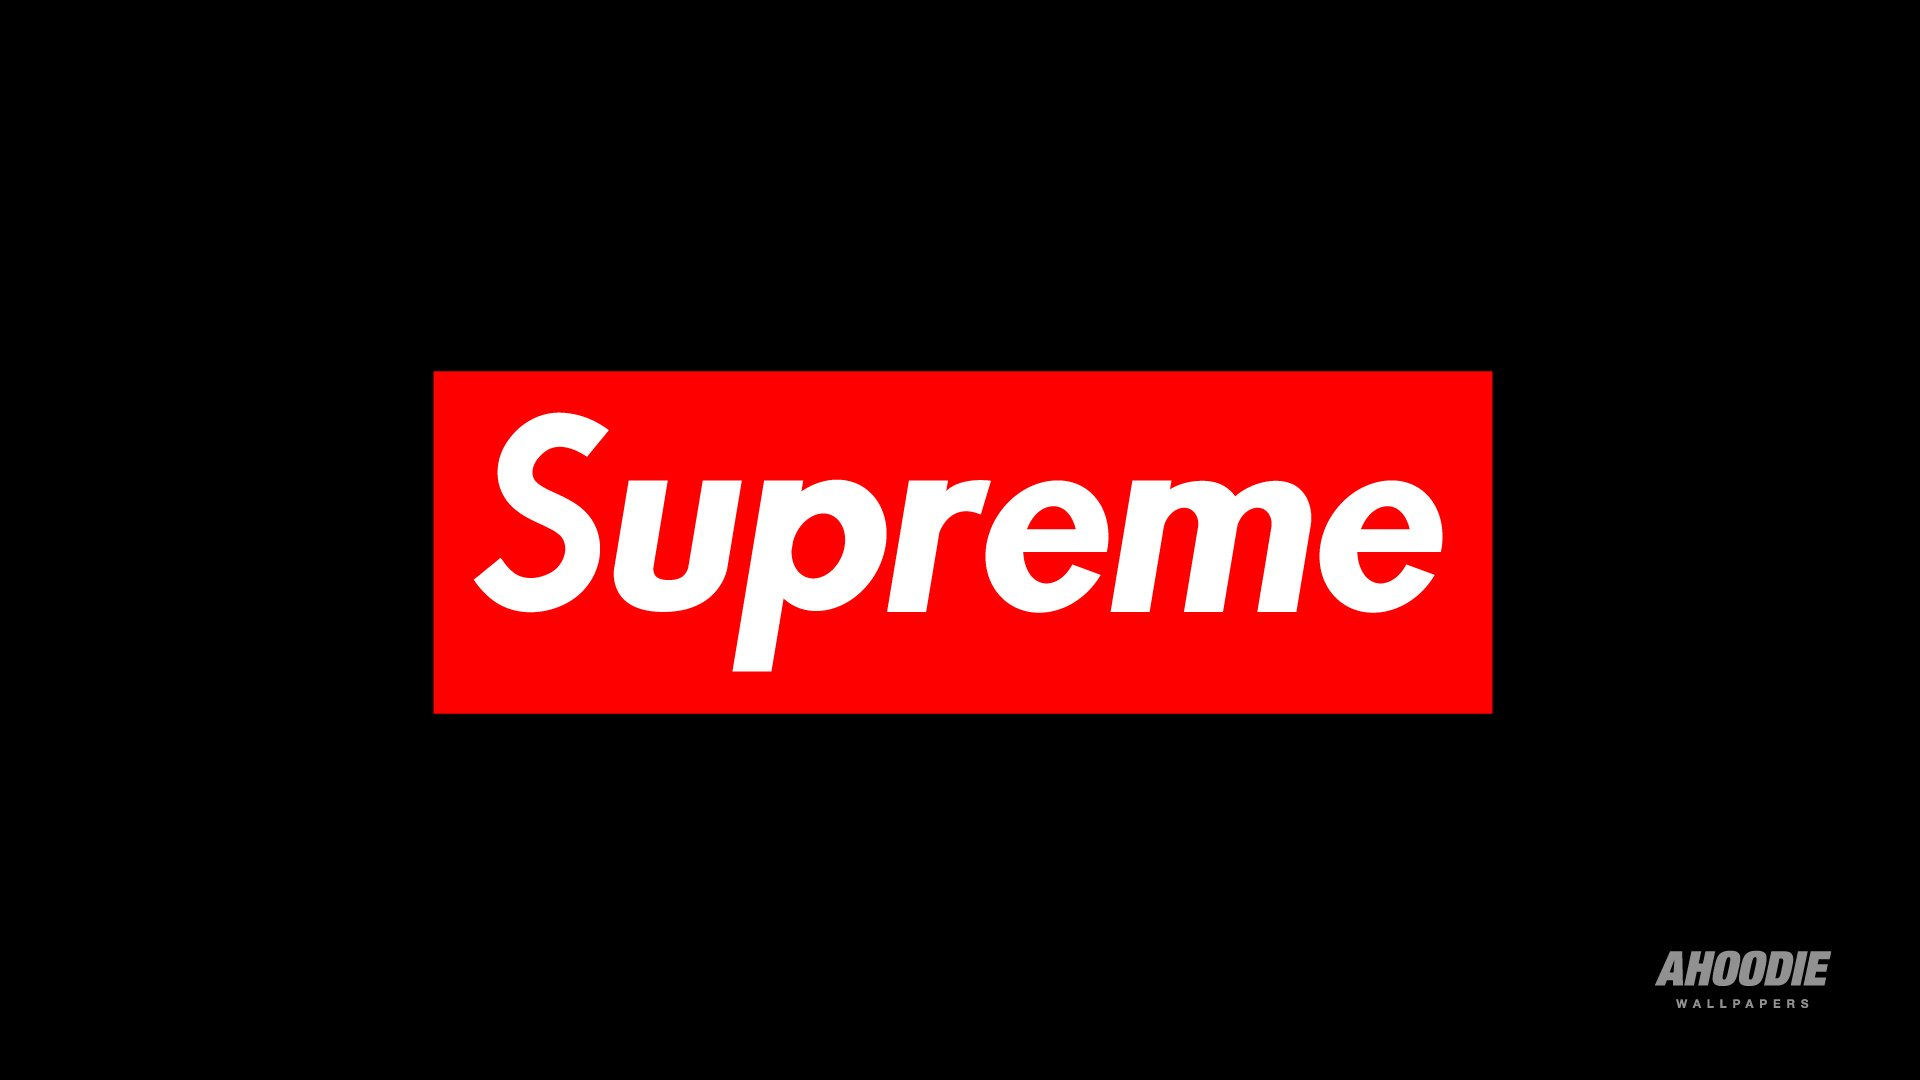 Supreme wallpaper 225064 1920x1080